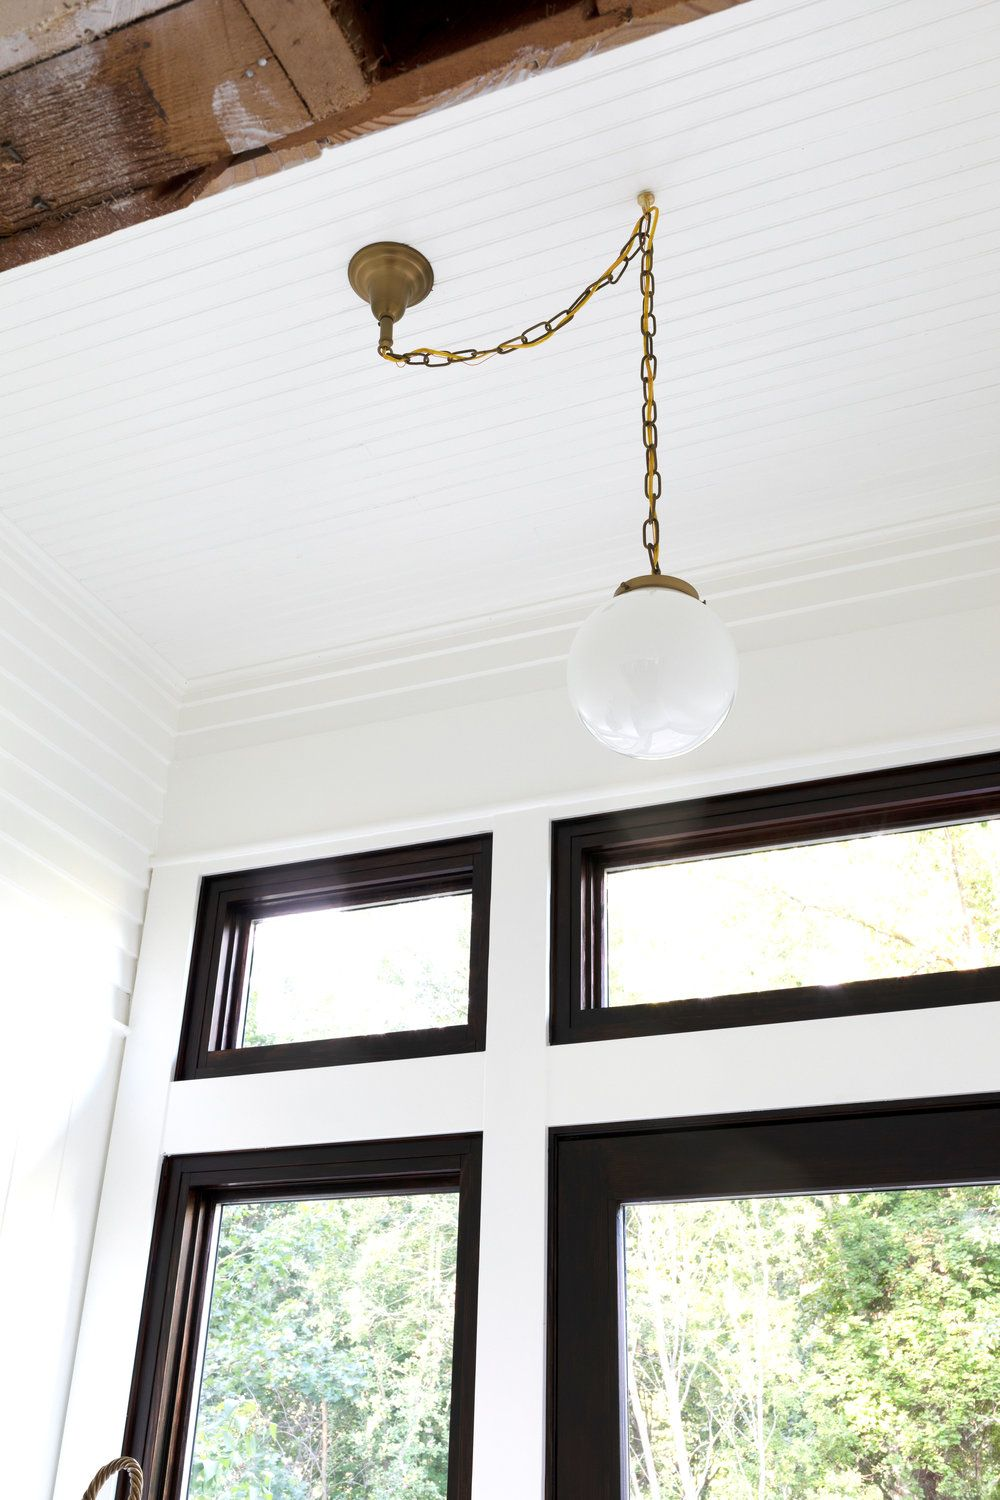 Ceiling Light Without Moving